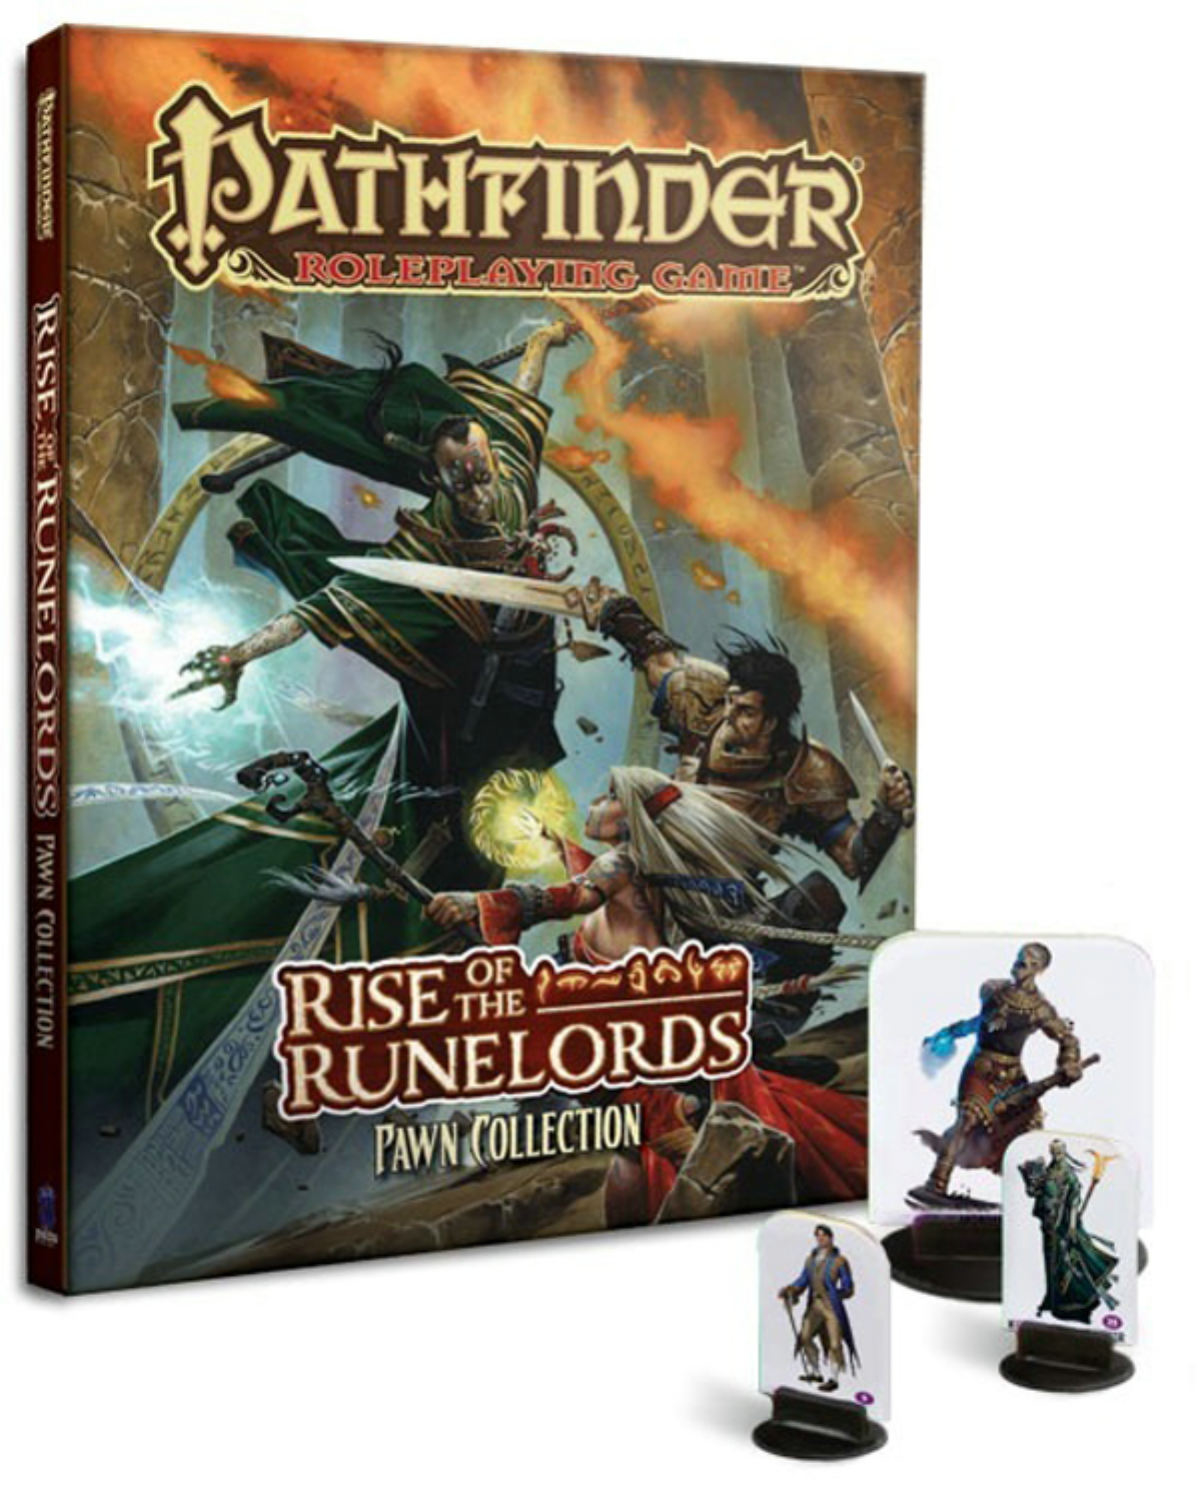 PATHFINDER ROLEPLAYING GAME RISE RUNELORDS ADV PATH PAWN COL